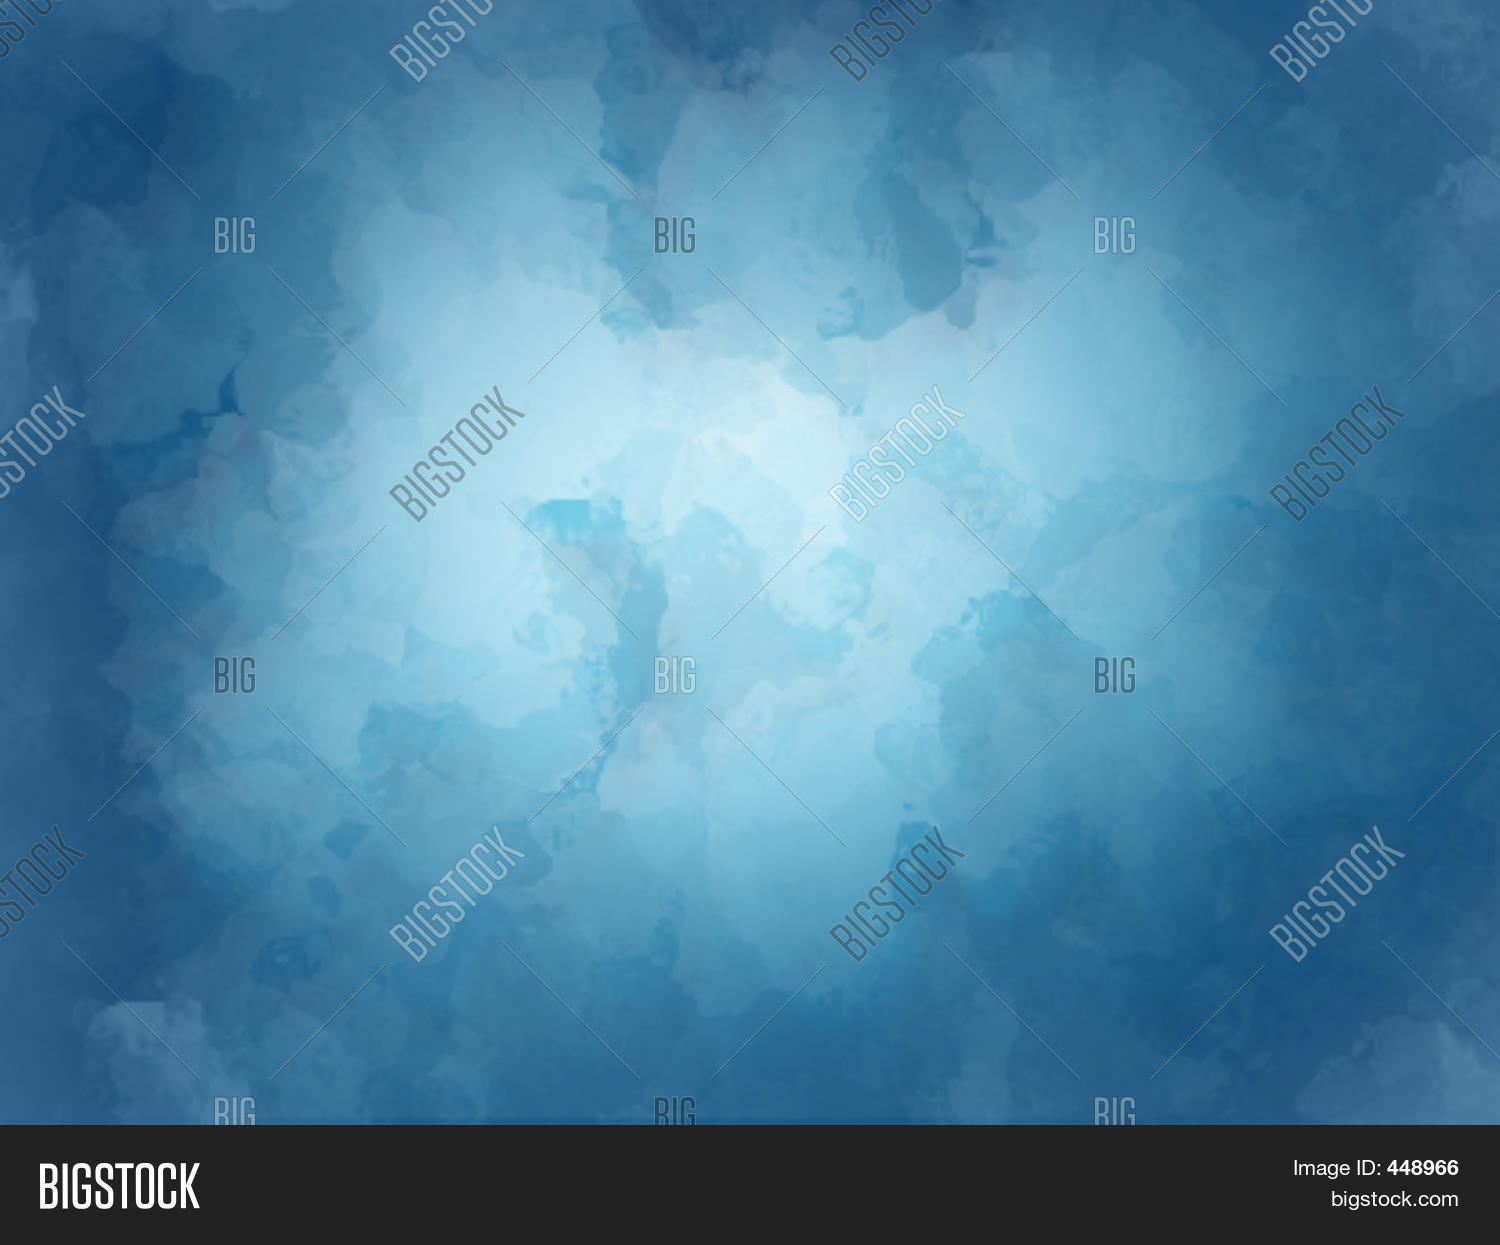 abstract,abstract blue background,art,backdrop,background,background abstract,backgrounds abstract,blue,blue background,blue background abstract,blue backgrounds,colorful,grunge,grunge background,grunge backgrounds,illustration,psychedelic,tie dye